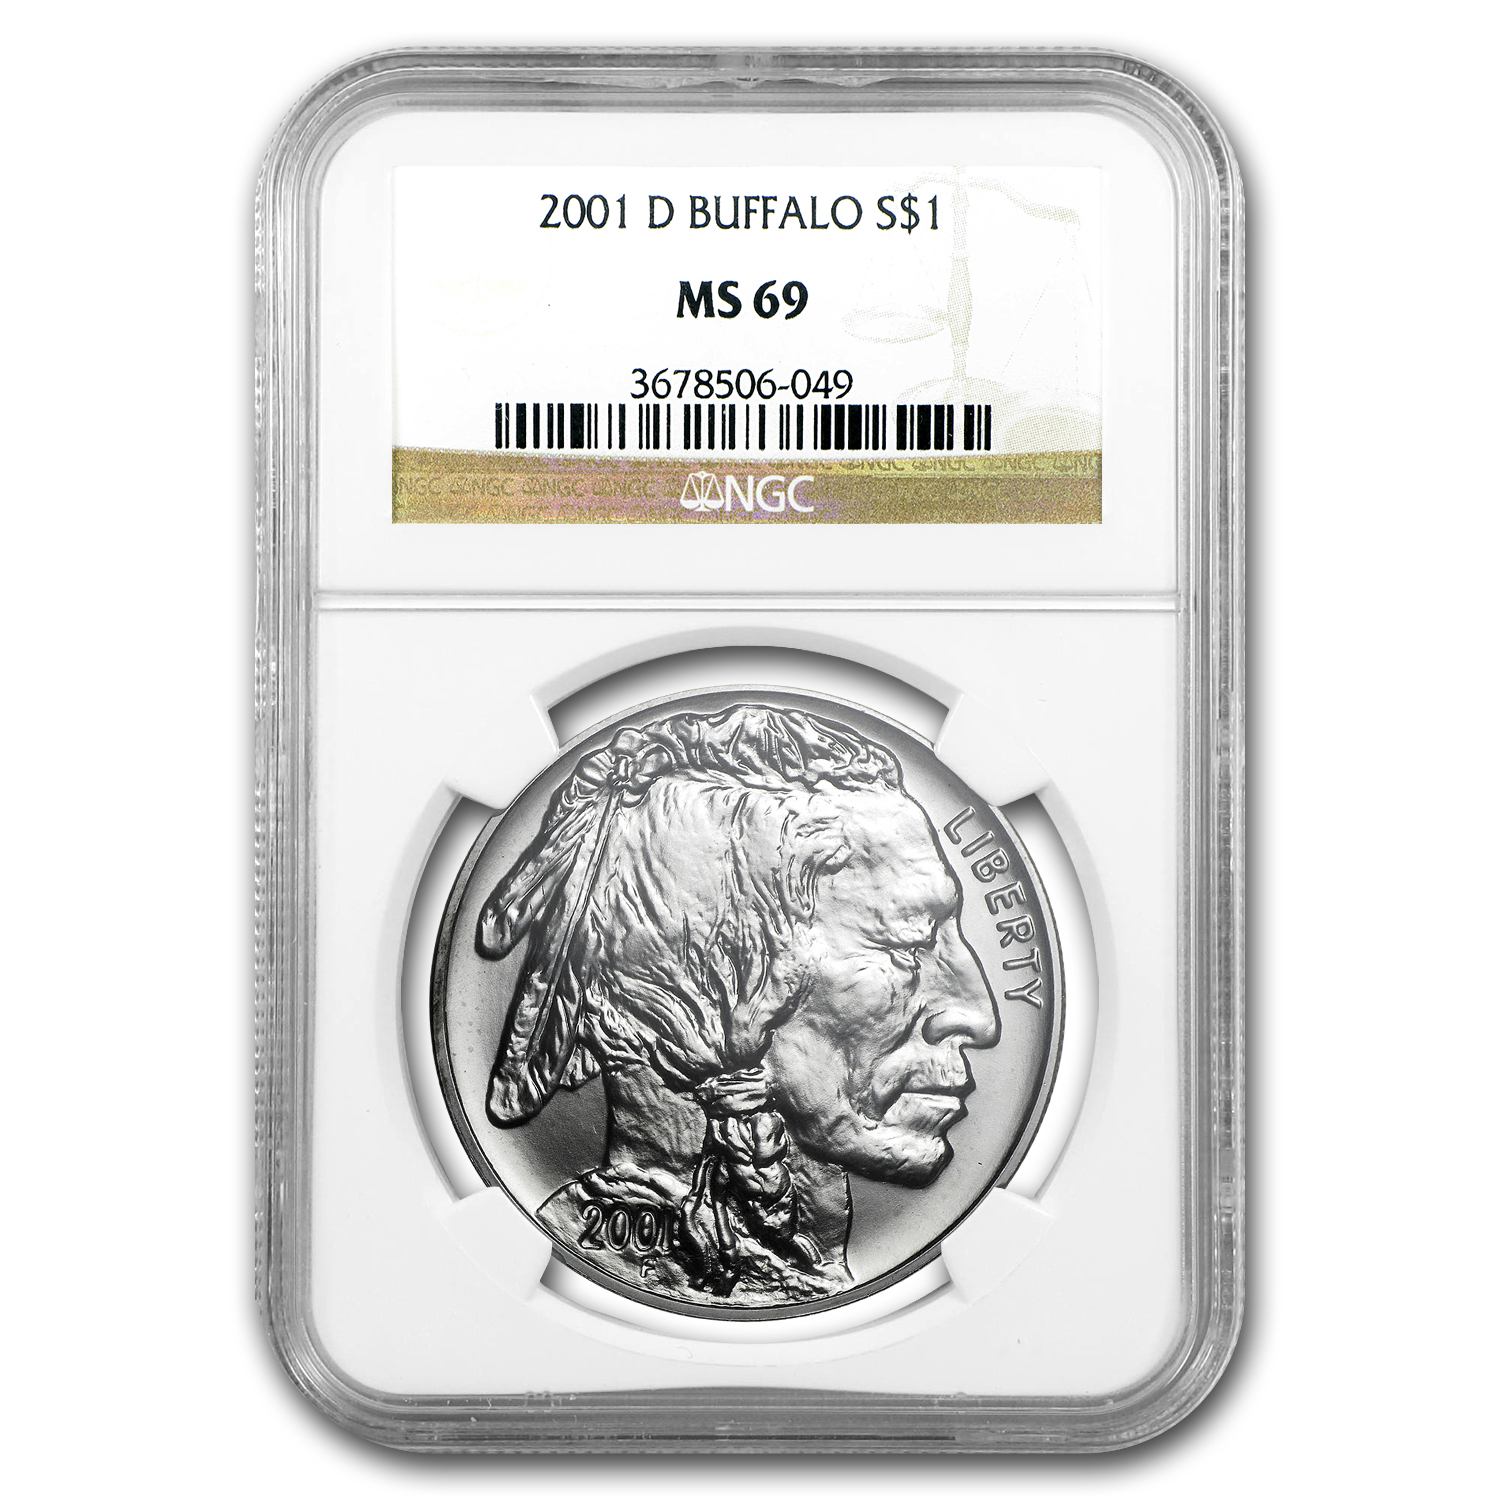 2001-D Buffalo $1 Silver Commem MS-69 NGC